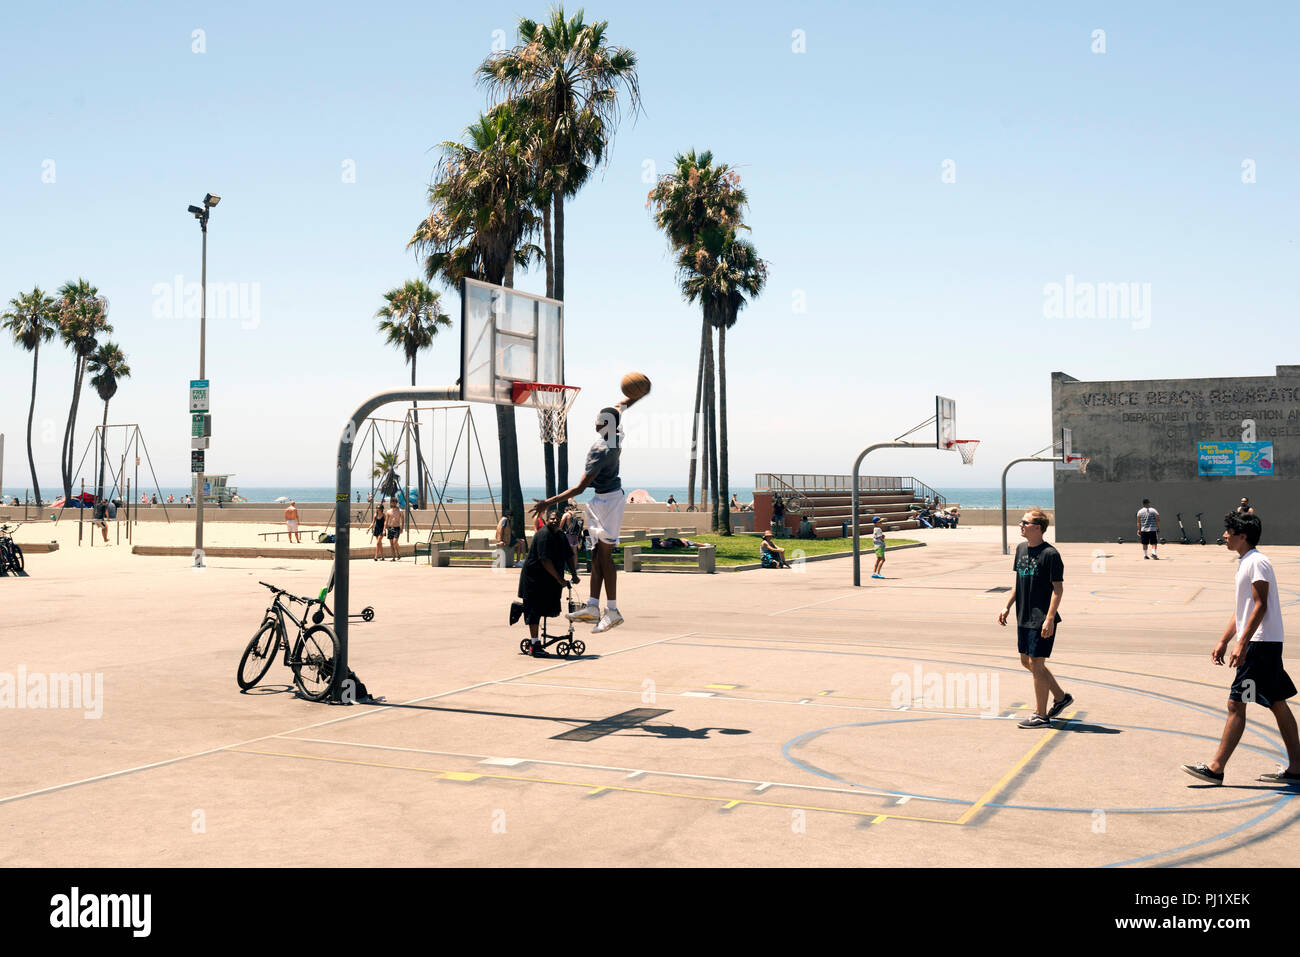 A black guy dunking in the basketball court outdoors in Venice beach, California in summer time - Stock Image